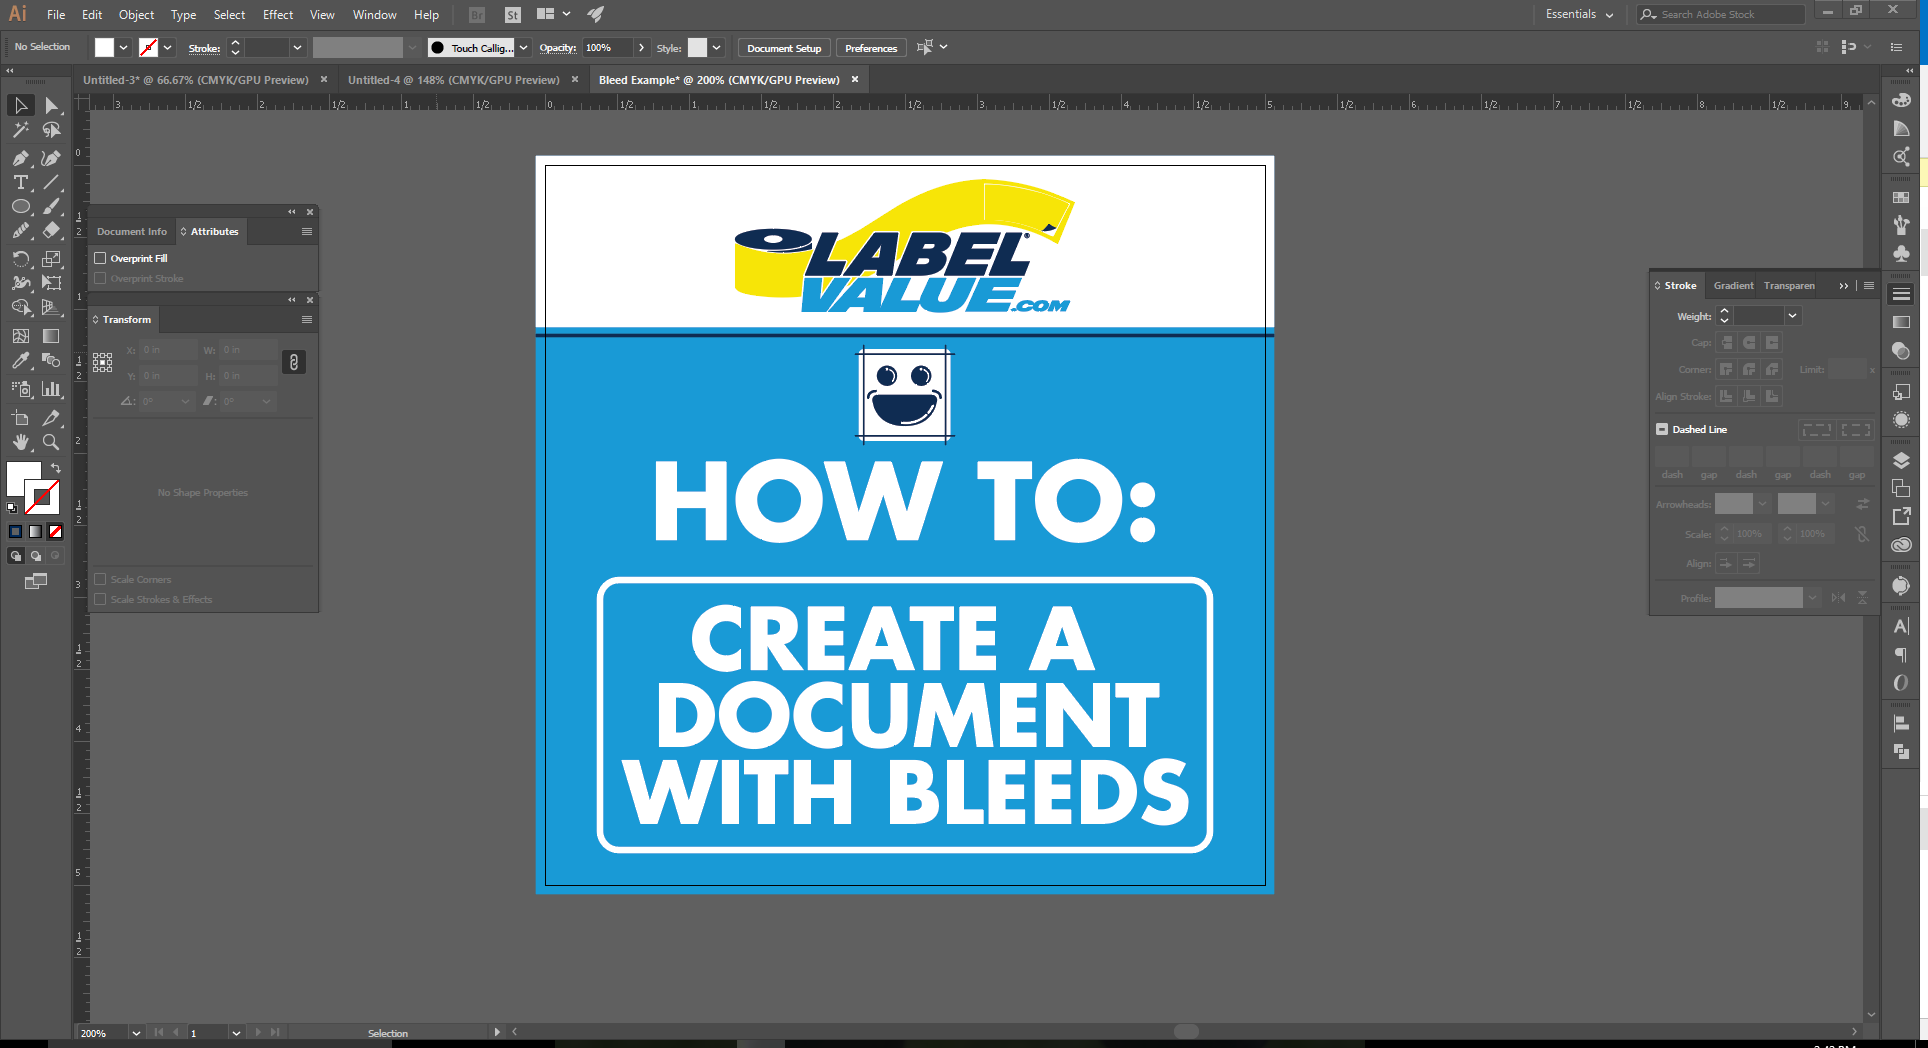 How to Set up Document Bleeds in Adobe Illustrator - 8